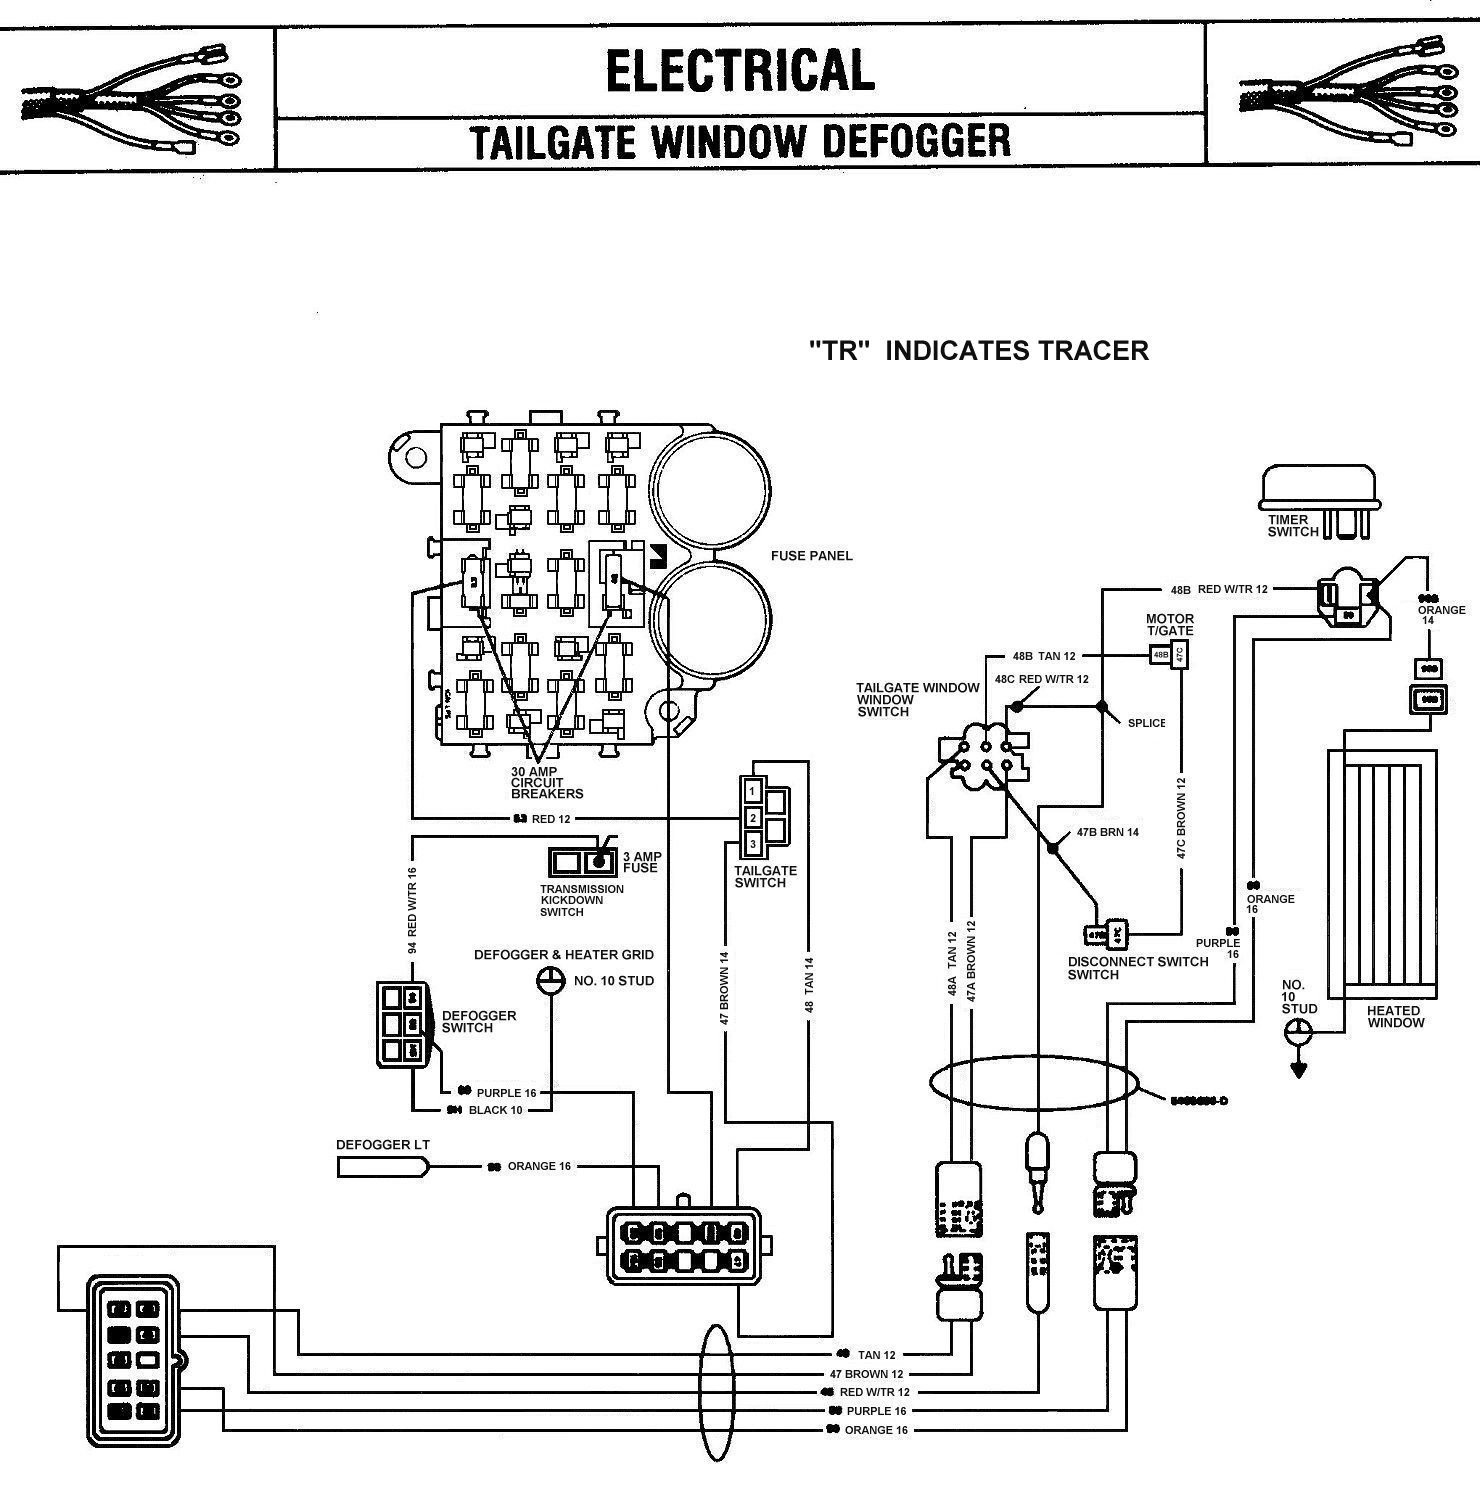 84 85_RearWindowDefroster 1979 jeep grand wagoneer wiring harness 1979 wiring diagrams Basic Electrical Wiring Diagrams at webbmarketing.co